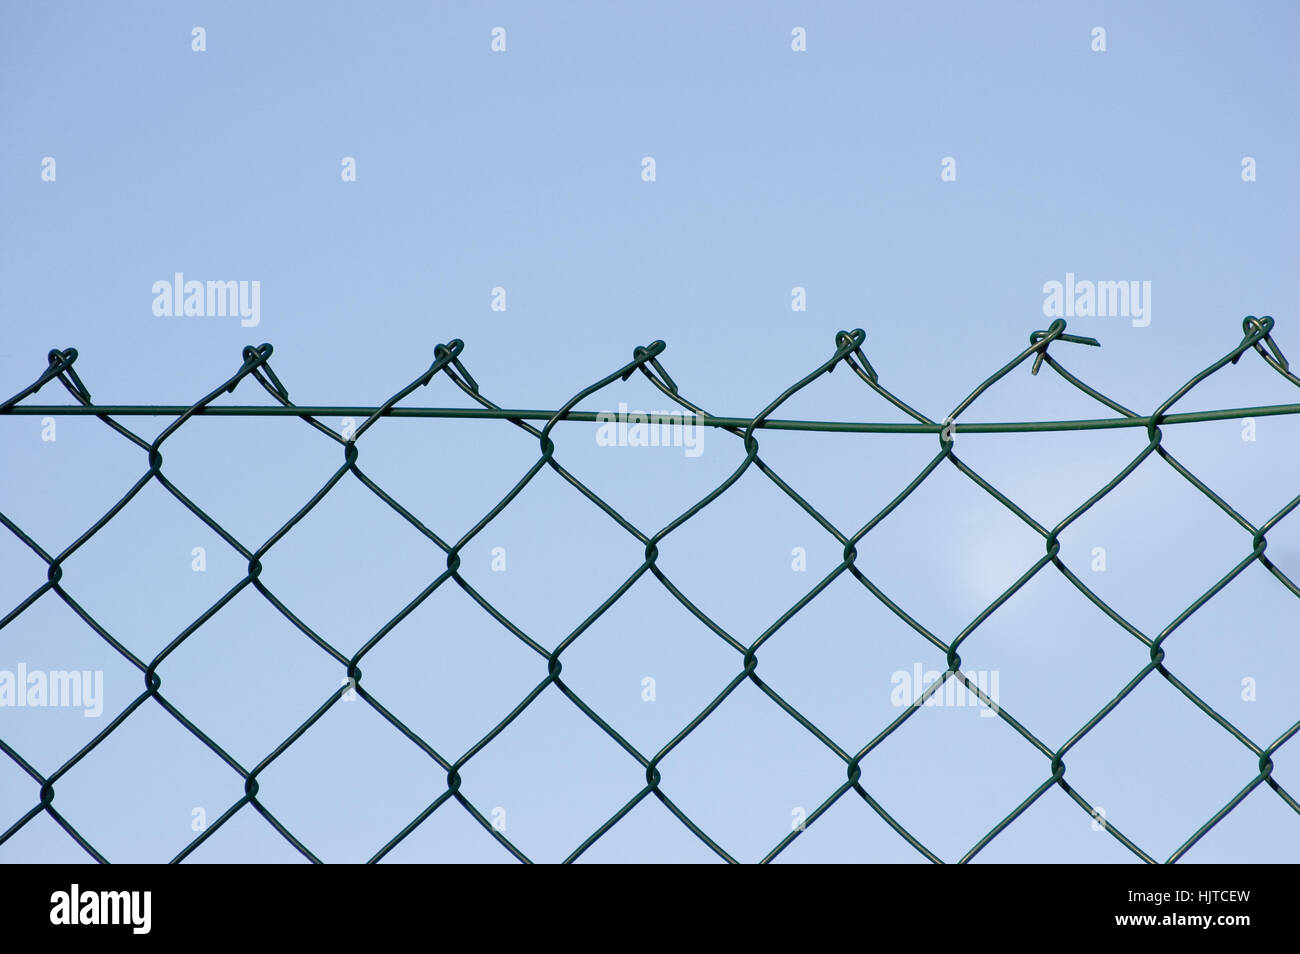 New wire security fence over bright blue sky horizontal closeup - Stock Image